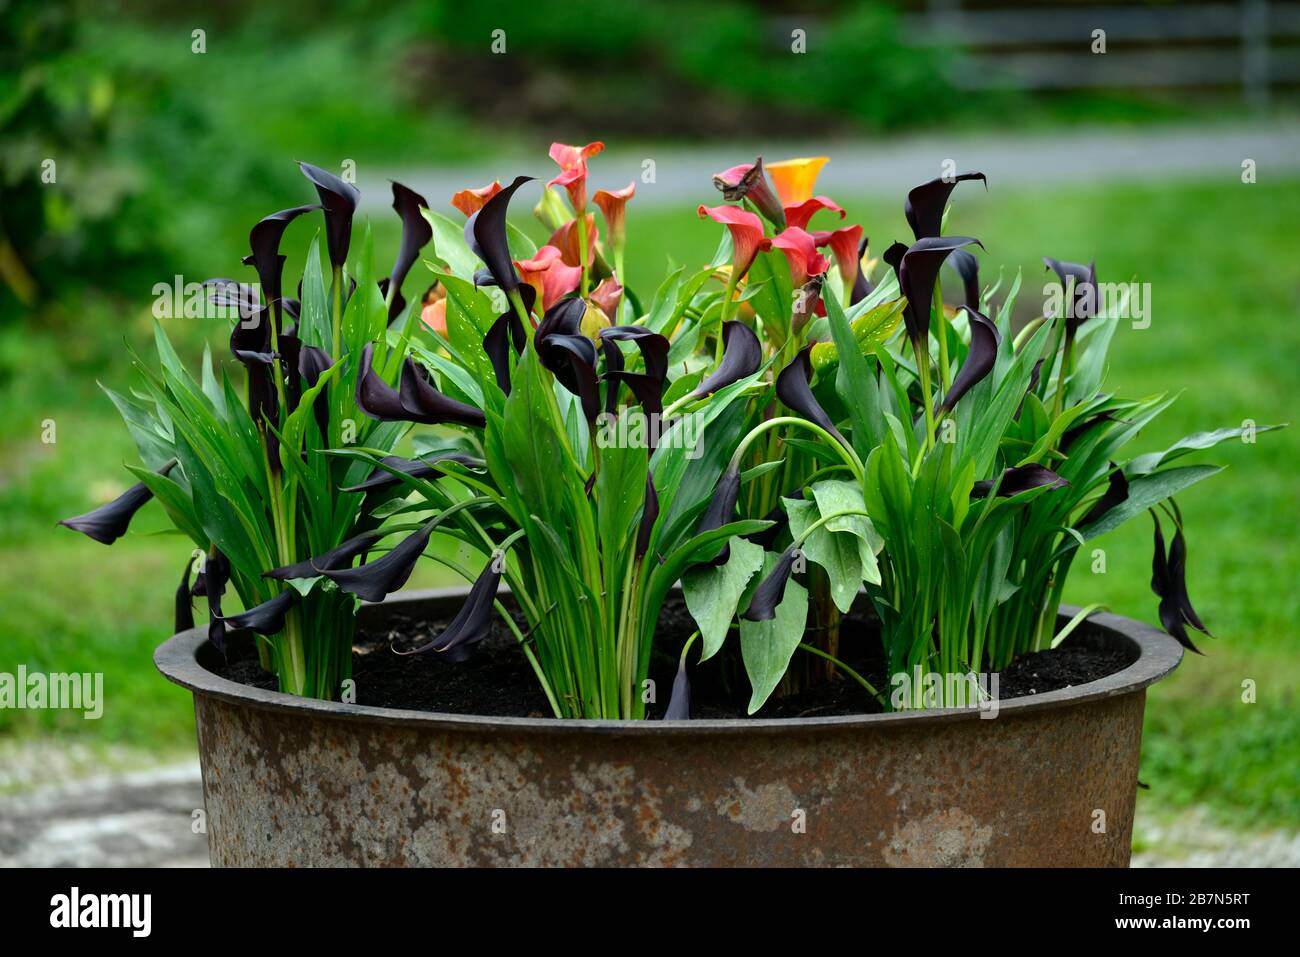 Zantedeschia Aethiopica Calla Lily Arum Lily Orange Black Flowers